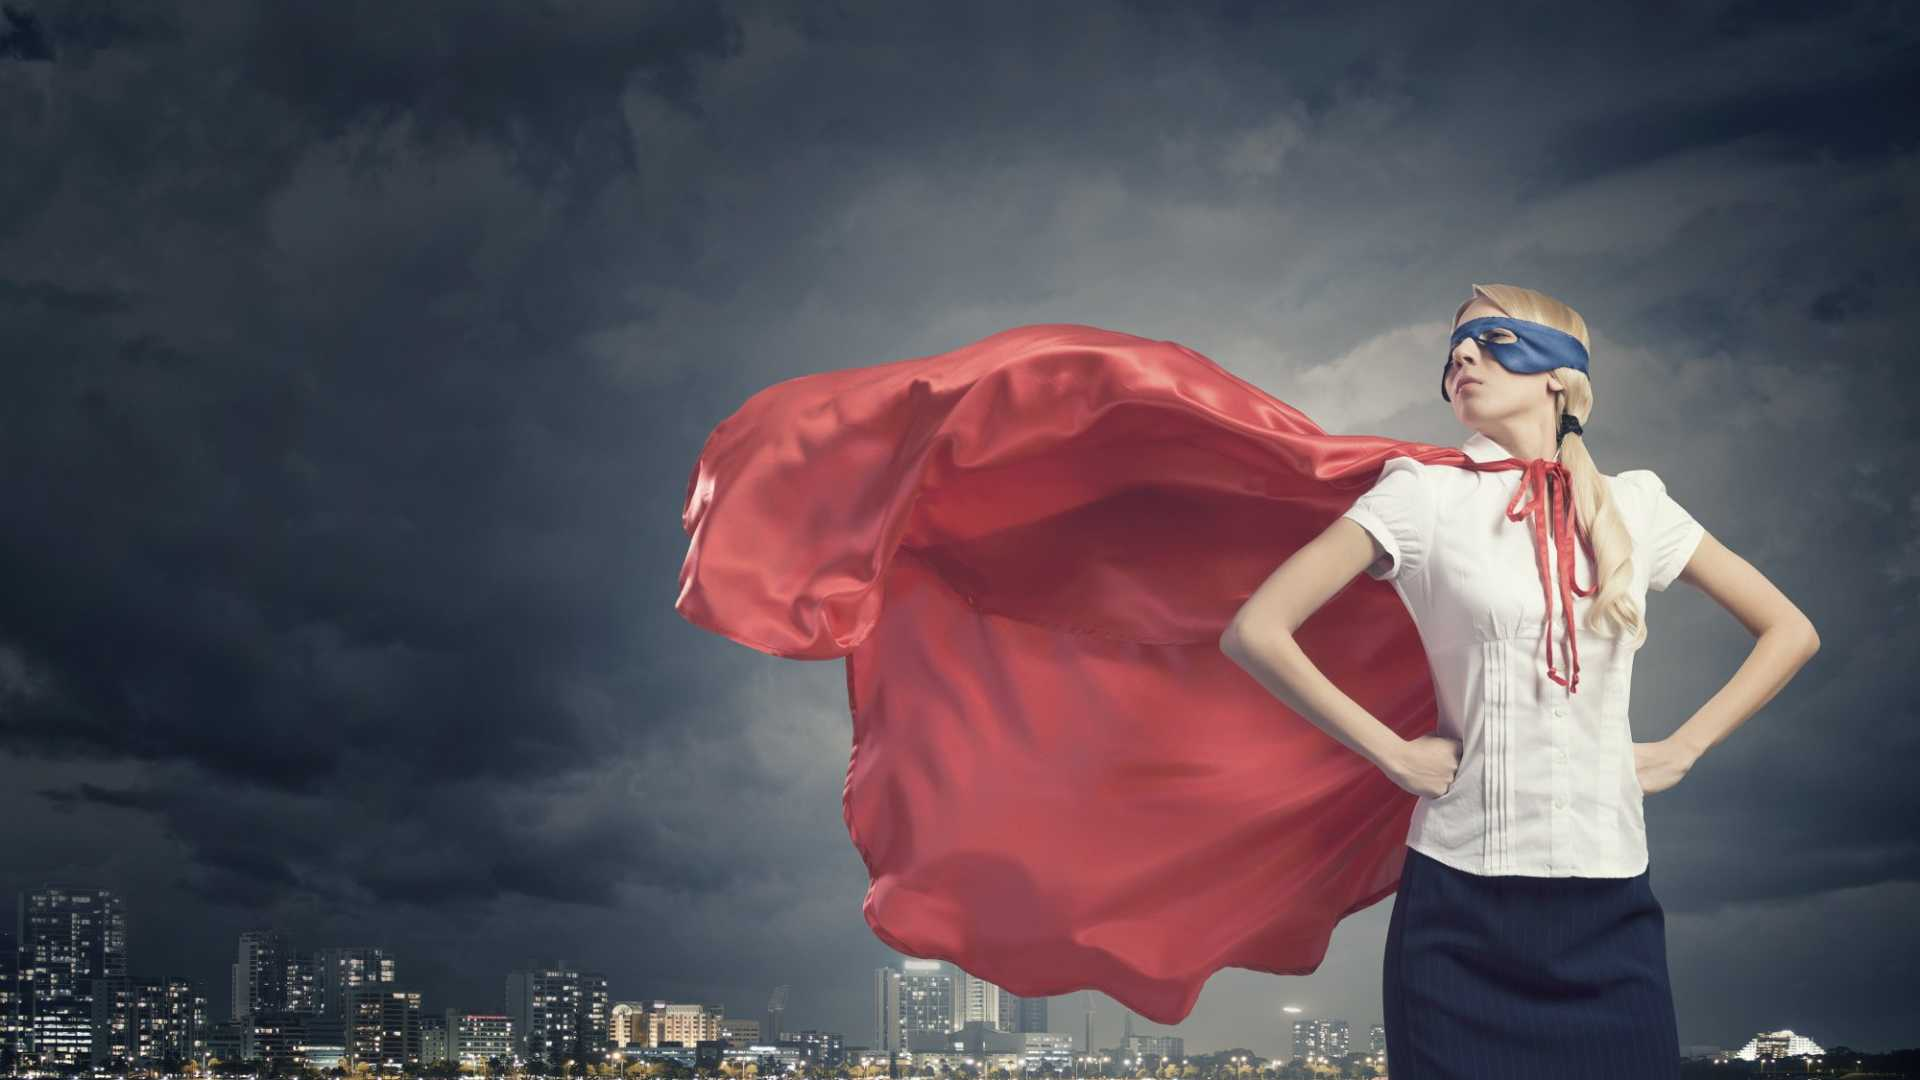 11 Keys to Being a SuperMentor (the Kind of Mentor Every Mentee Worships)